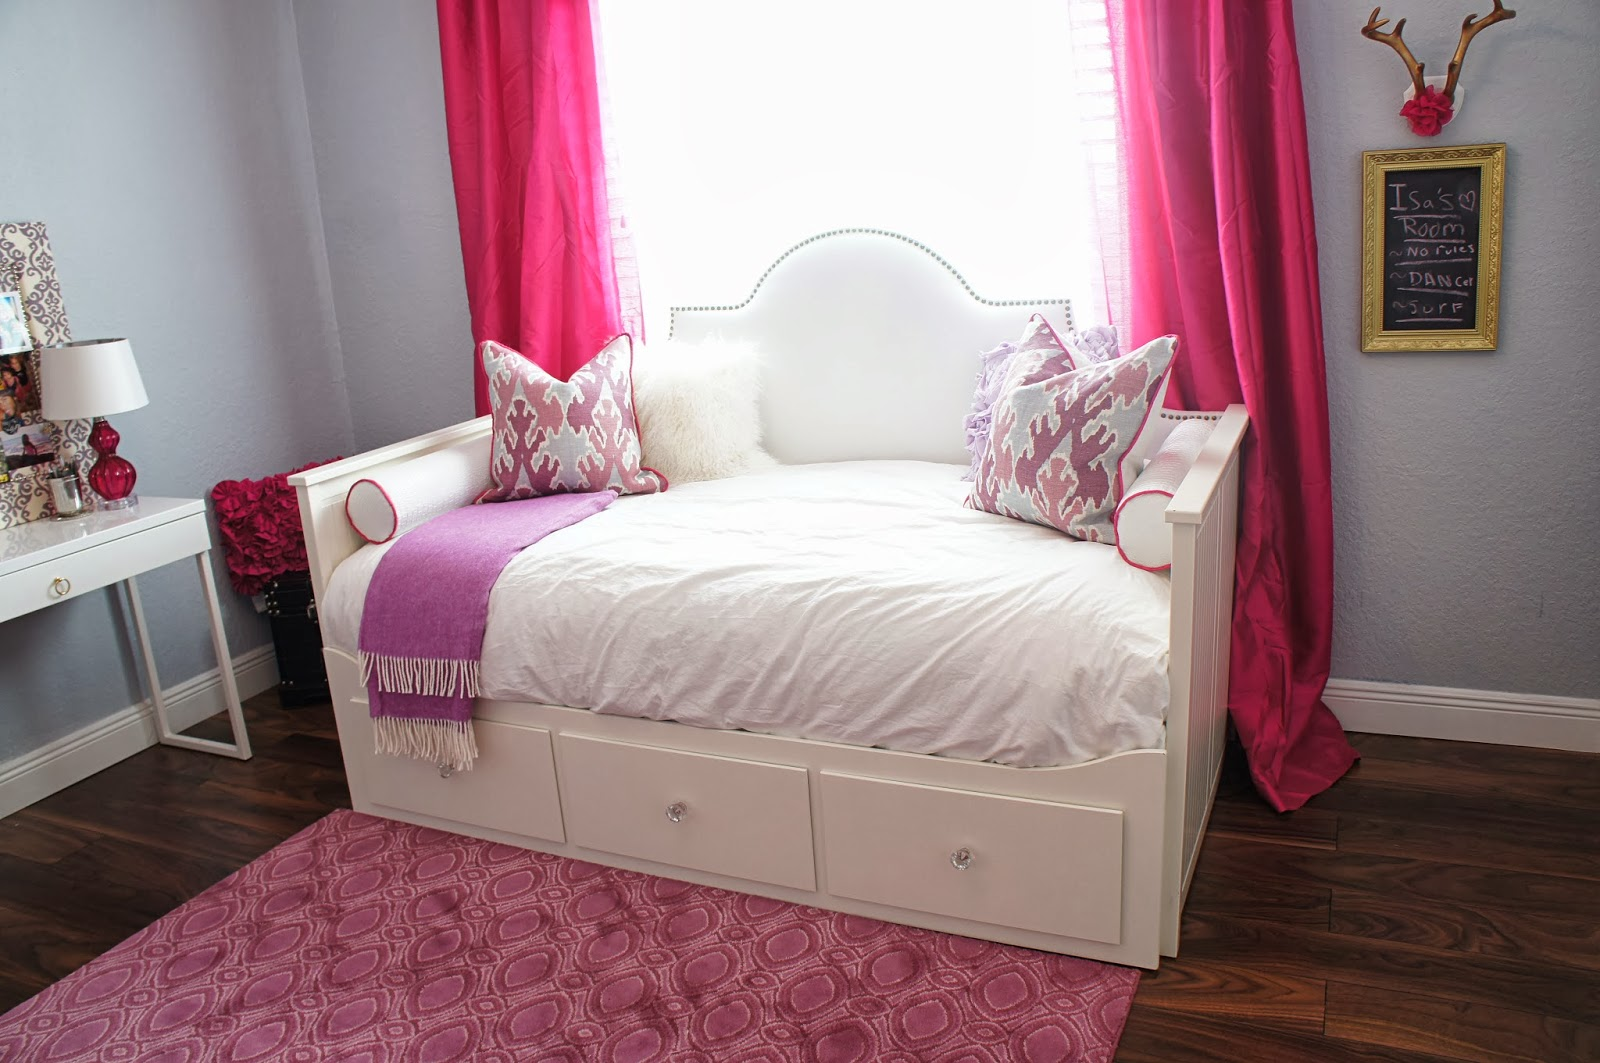 queensize daybed for girl queensize daybed for young girl pink queen